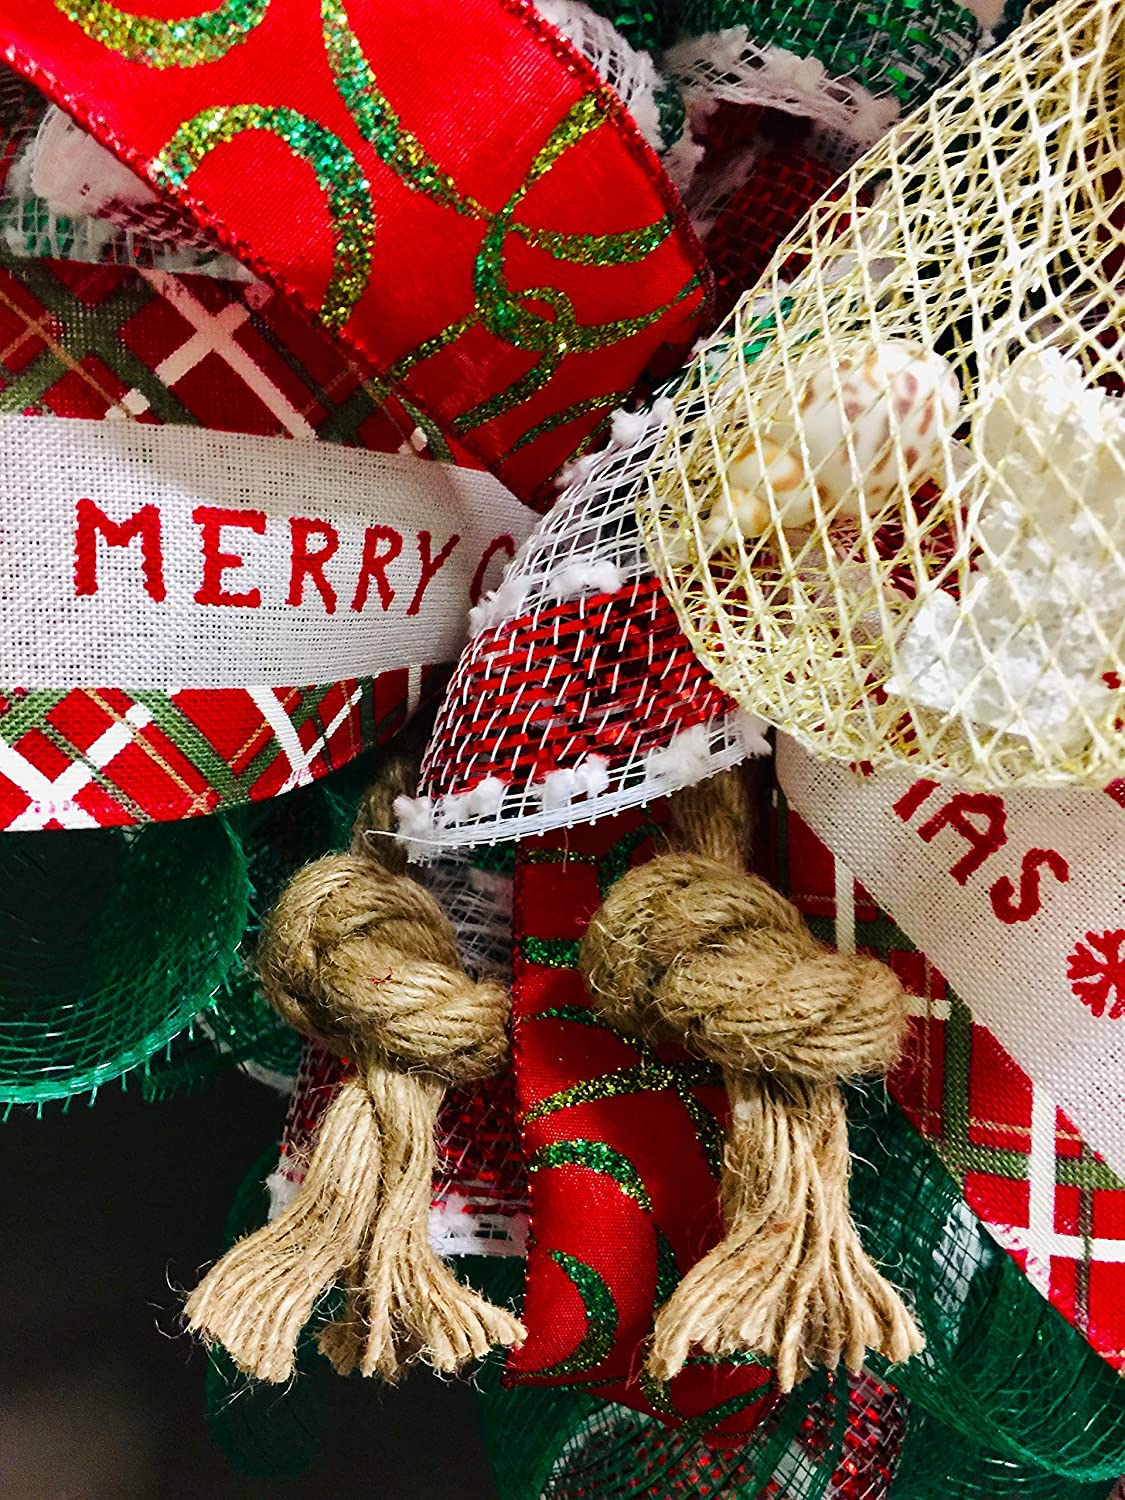 Made with Weatherproof Fabric Measures 20x20x6 Very Full Coastal Christmas 18 Santa Claus Wreath Holding a Starfish /& Bag of Shells Wreath has Nautical Knots /& Red Ball Ornaments